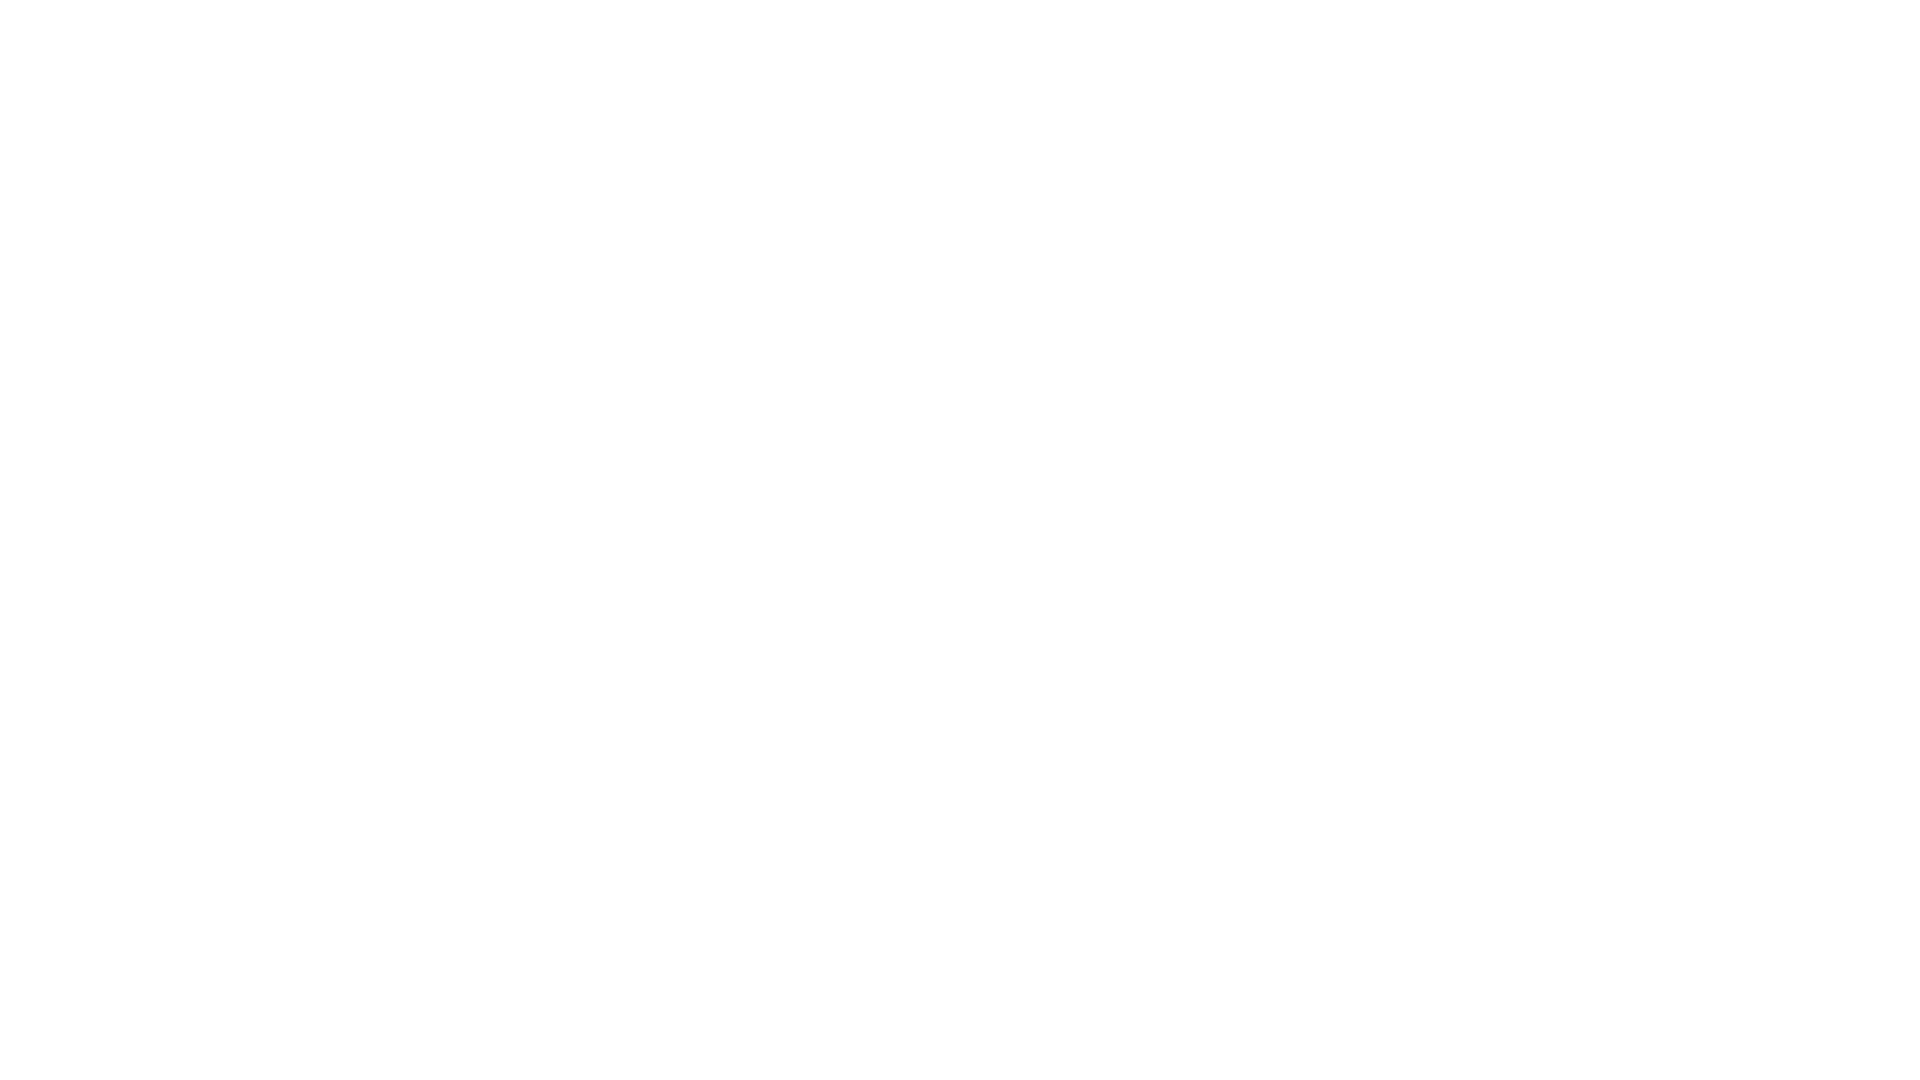 Snow falling png. Snowflakes transparent pictures free